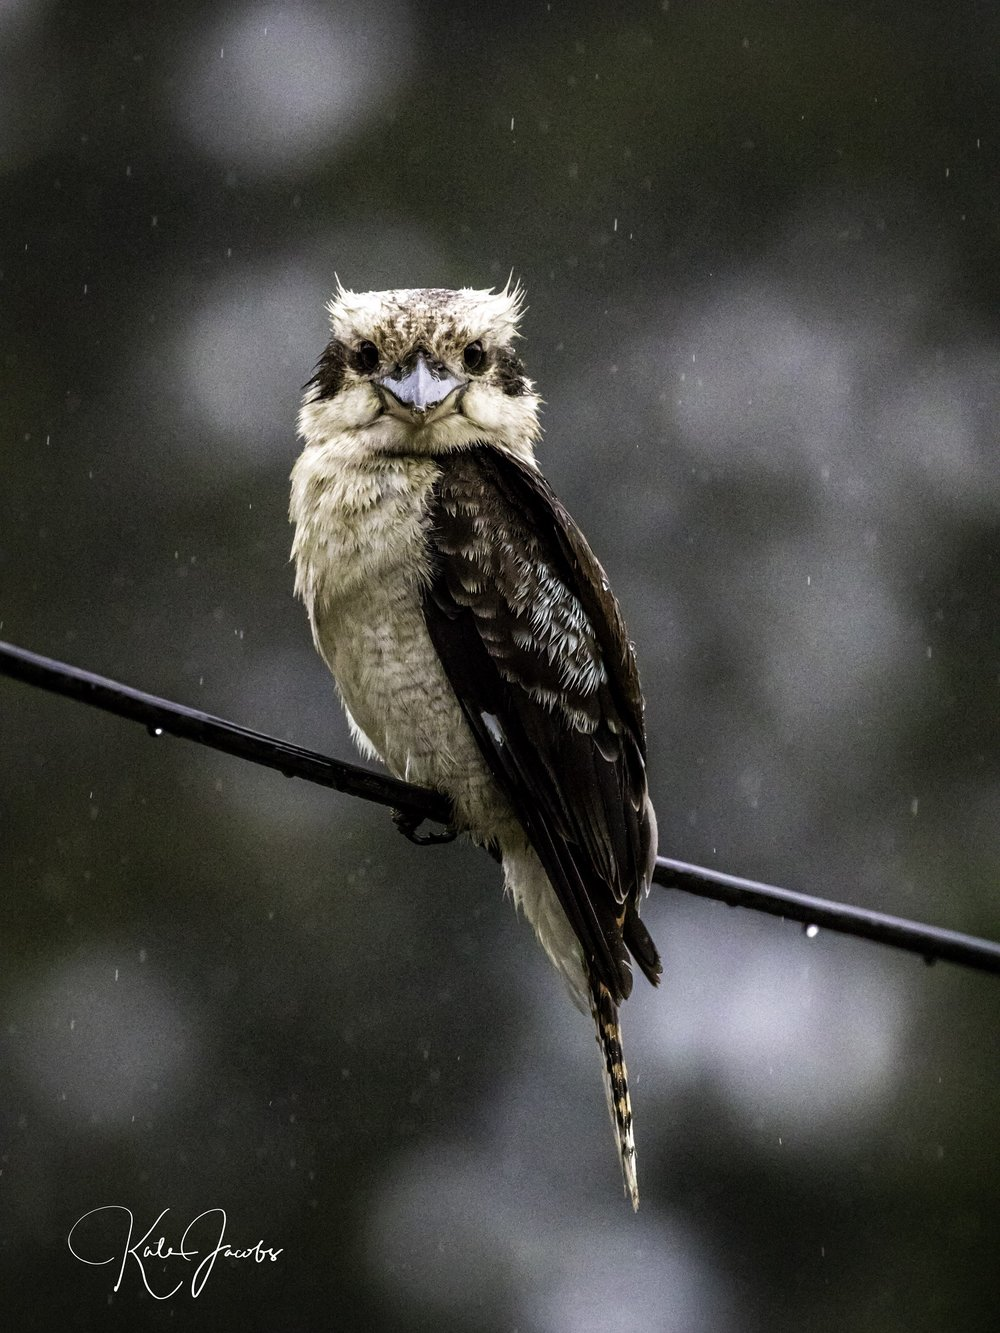 competition_kookaburra1.jpg